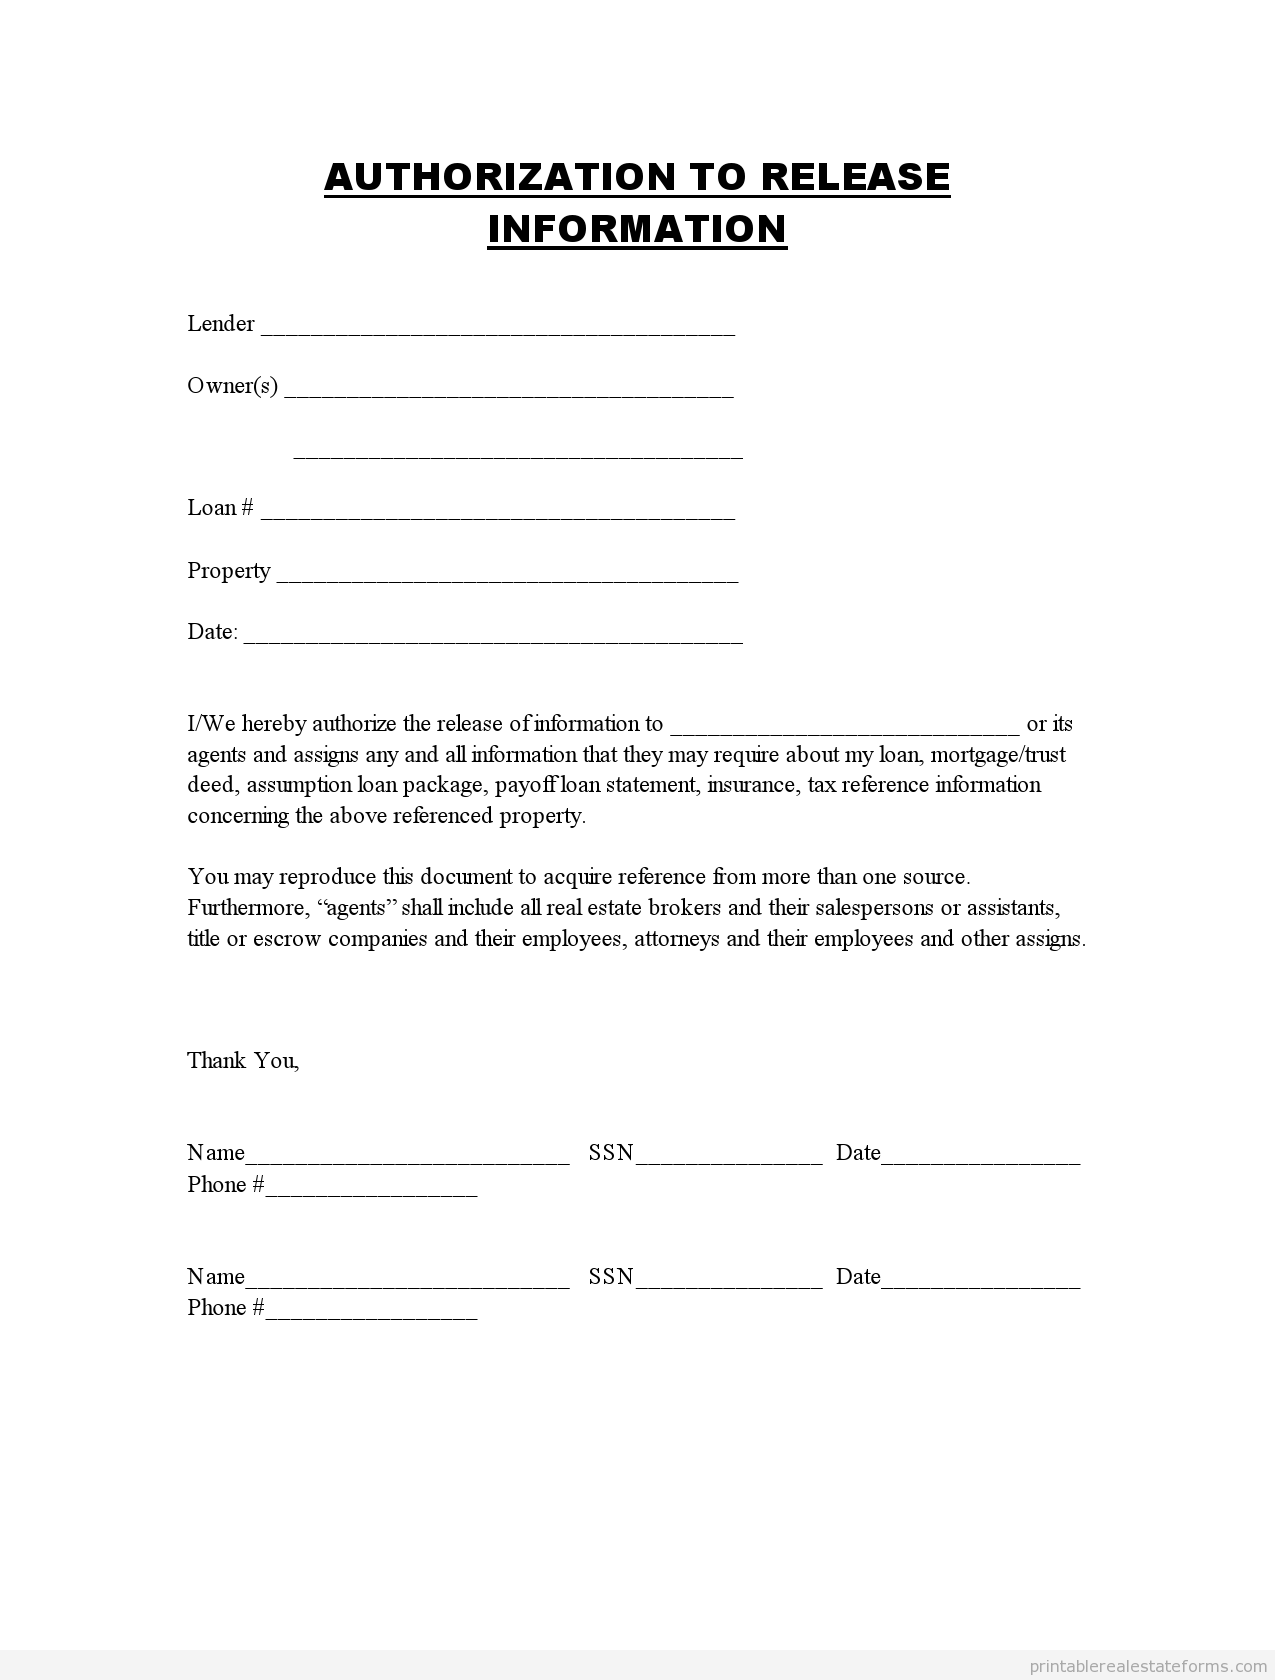 Printable authorization to release information template 2015 – Release of Mortgage Form